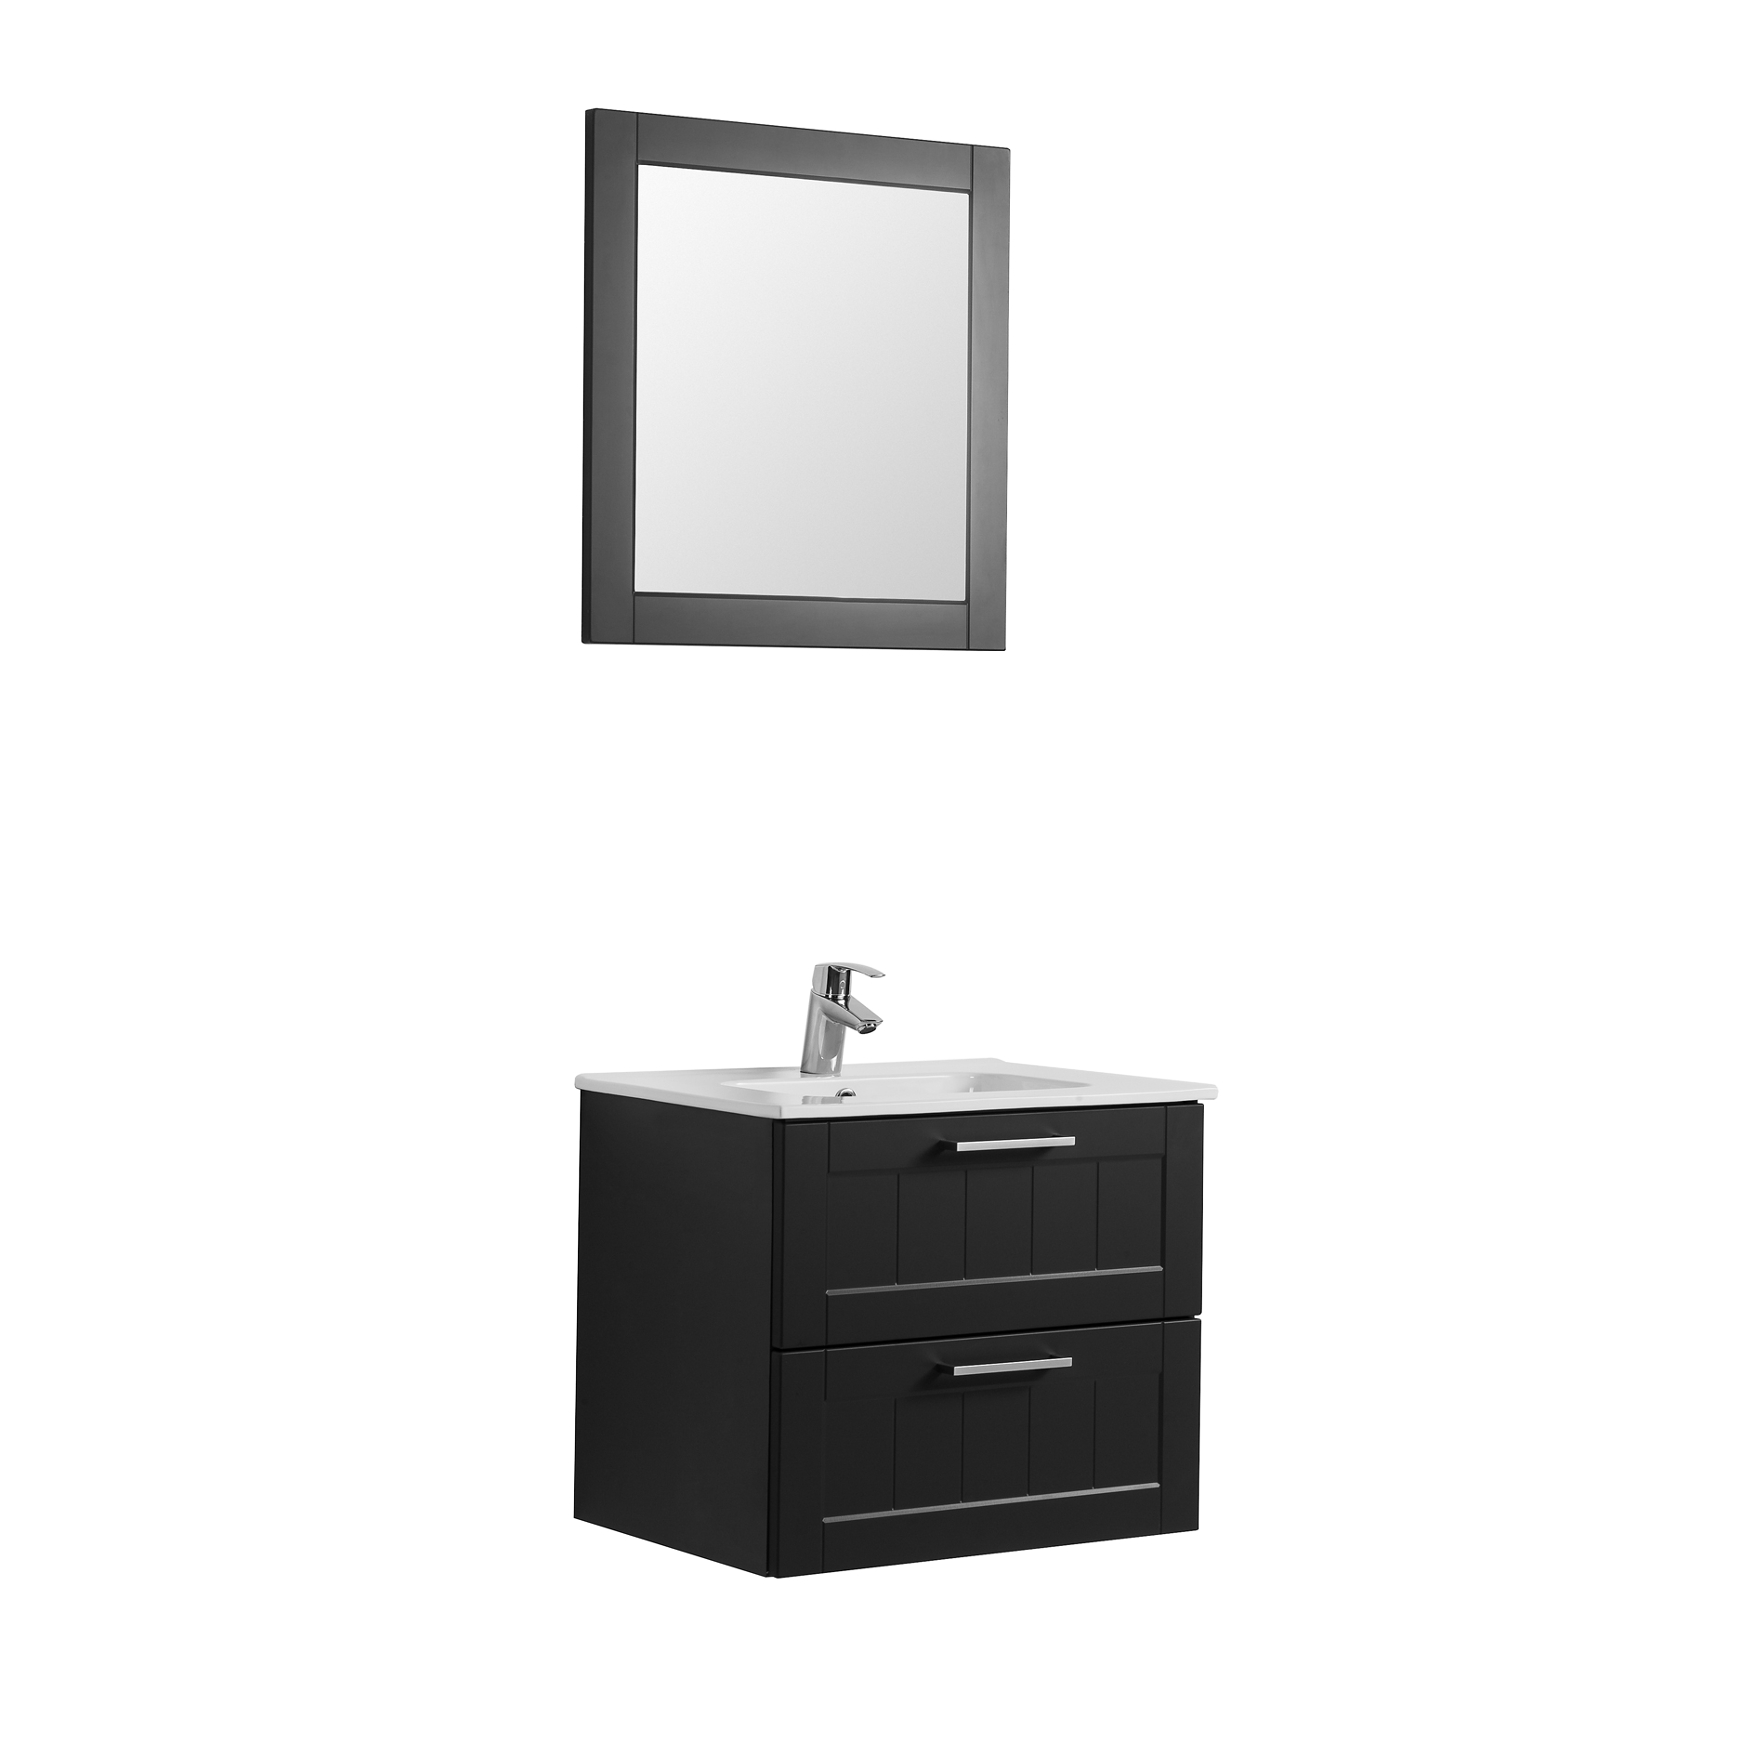 waschtisch 60 cm breit badm bel set cardiff mit. Black Bedroom Furniture Sets. Home Design Ideas